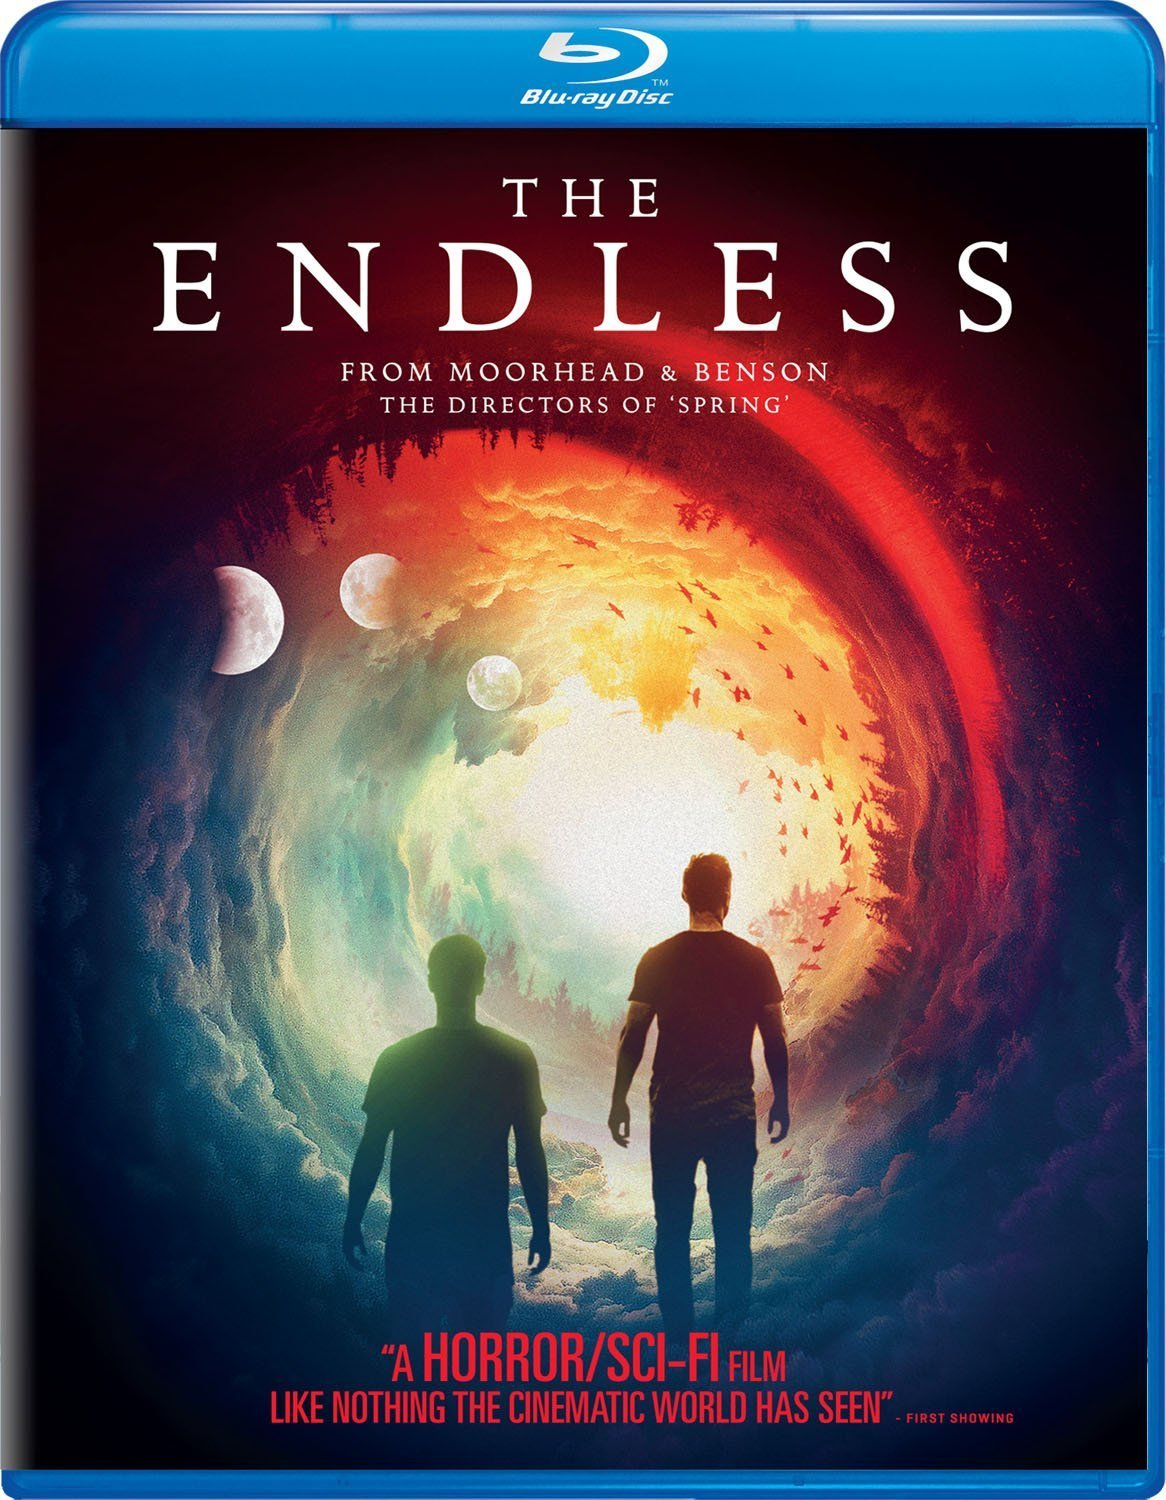 The Endless (2017) Blu-ray